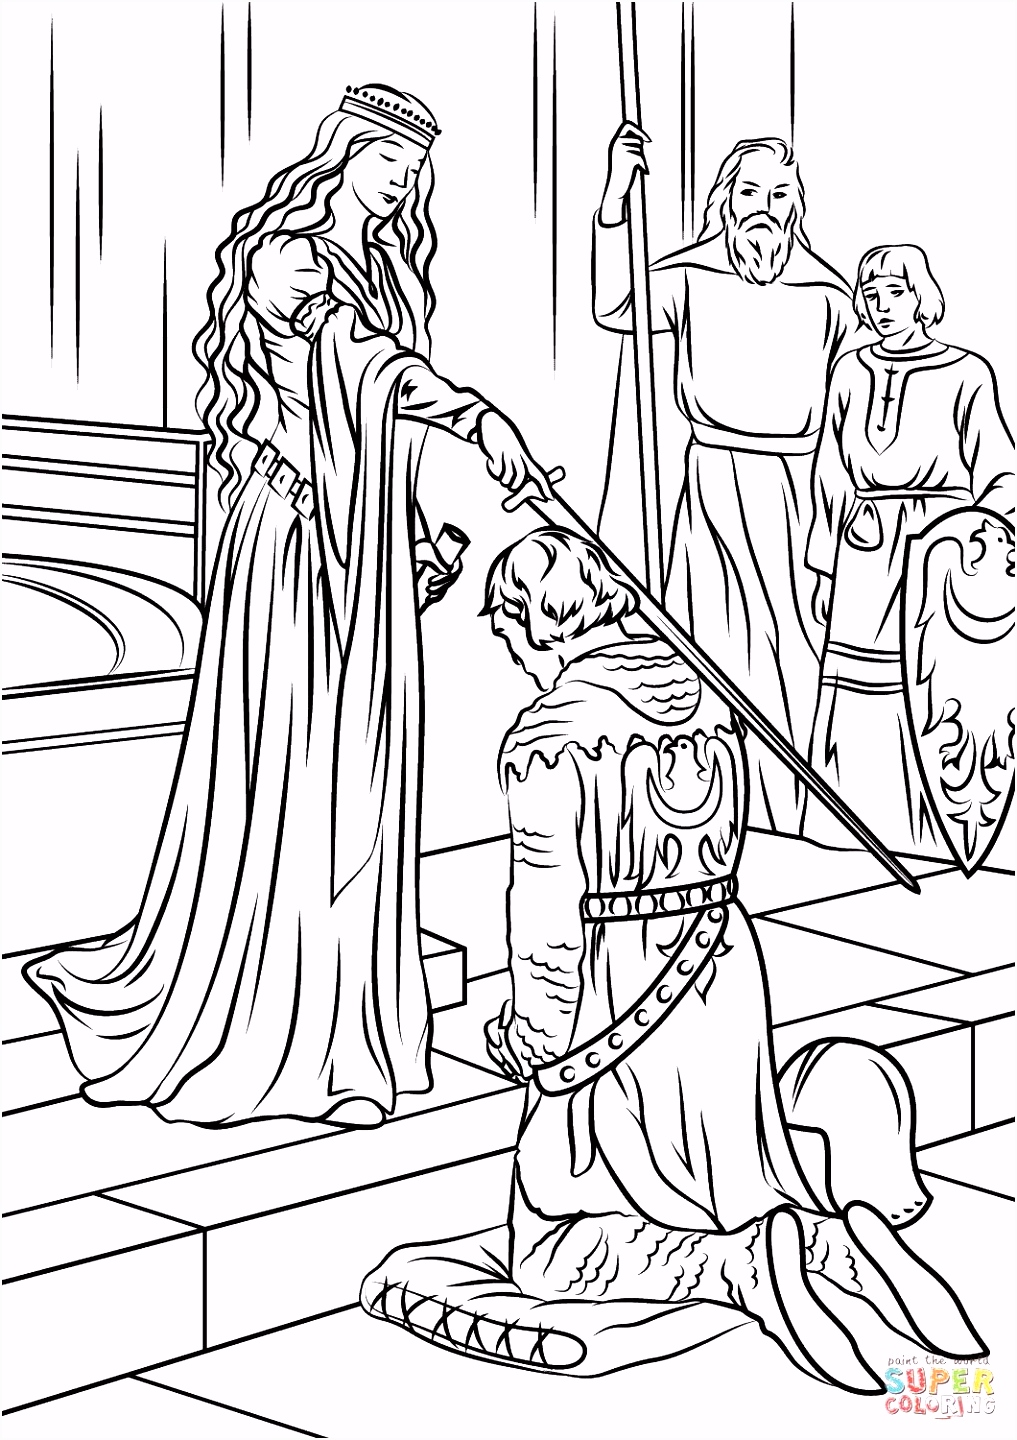 Me val Princess Coloring Pages – From the thousands of photos